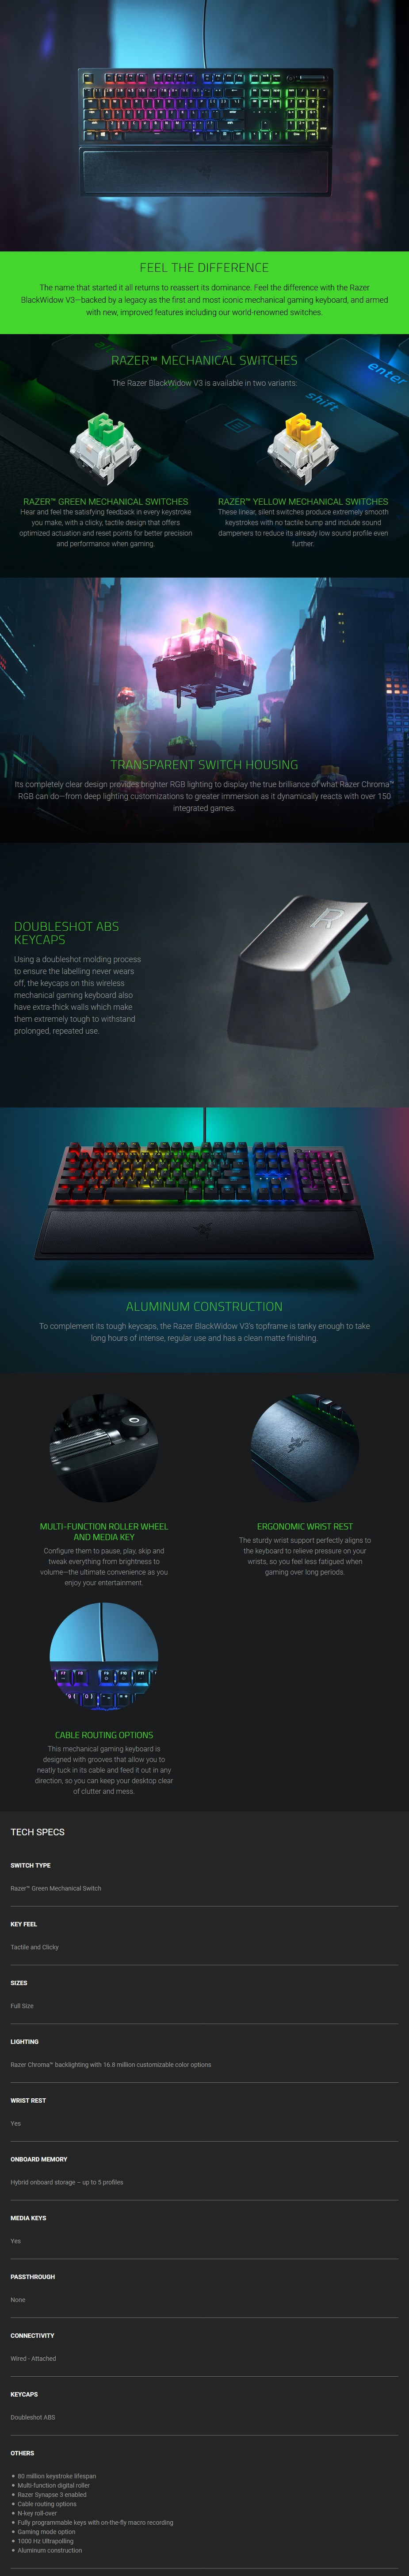 Razer BlackWidow V3 Mechanical Gaming Keyboard - Green Switches - Overview 1